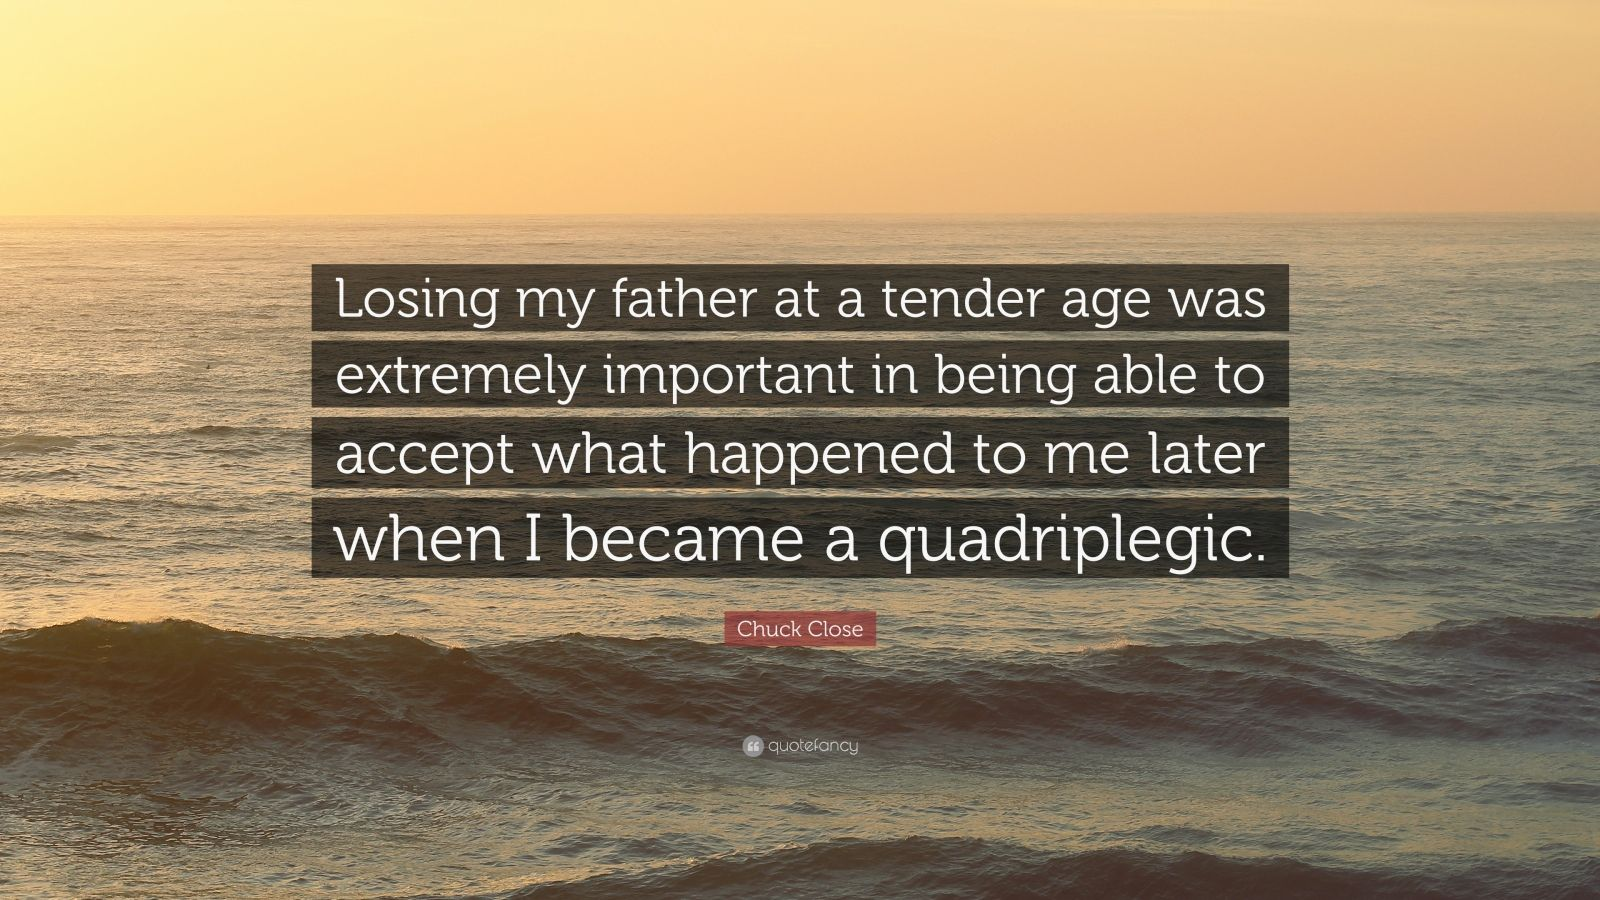 """Chuck Close Quote: """"Losing my father at a tender age was extremely important in being able to accept what happened to me later when I became a quadriplegic."""""""